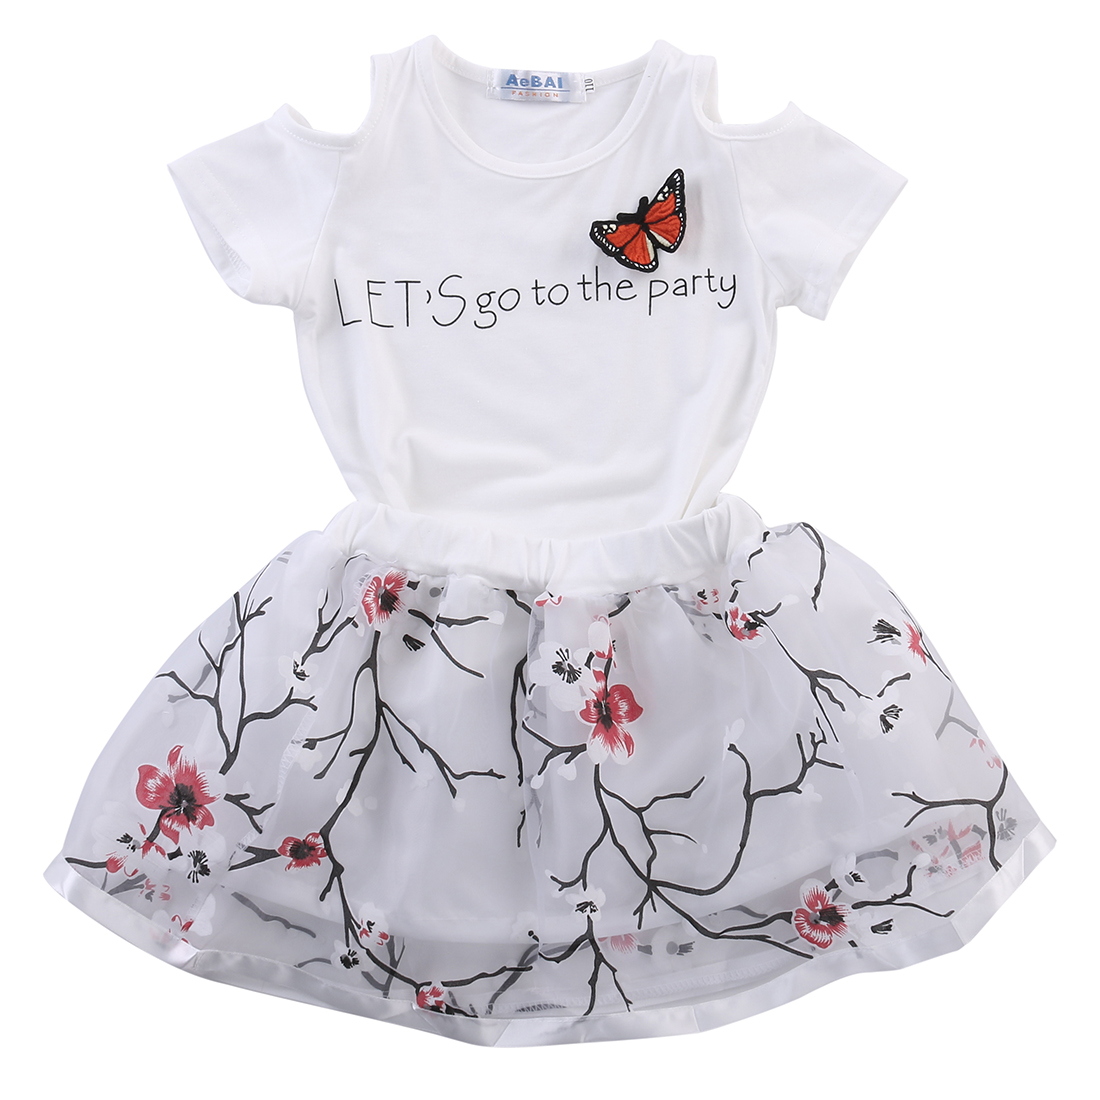 Princess Toddler Baby Girl Kids Flower Tops Shirt+Skirt Outfits Clothes Set 2pcs